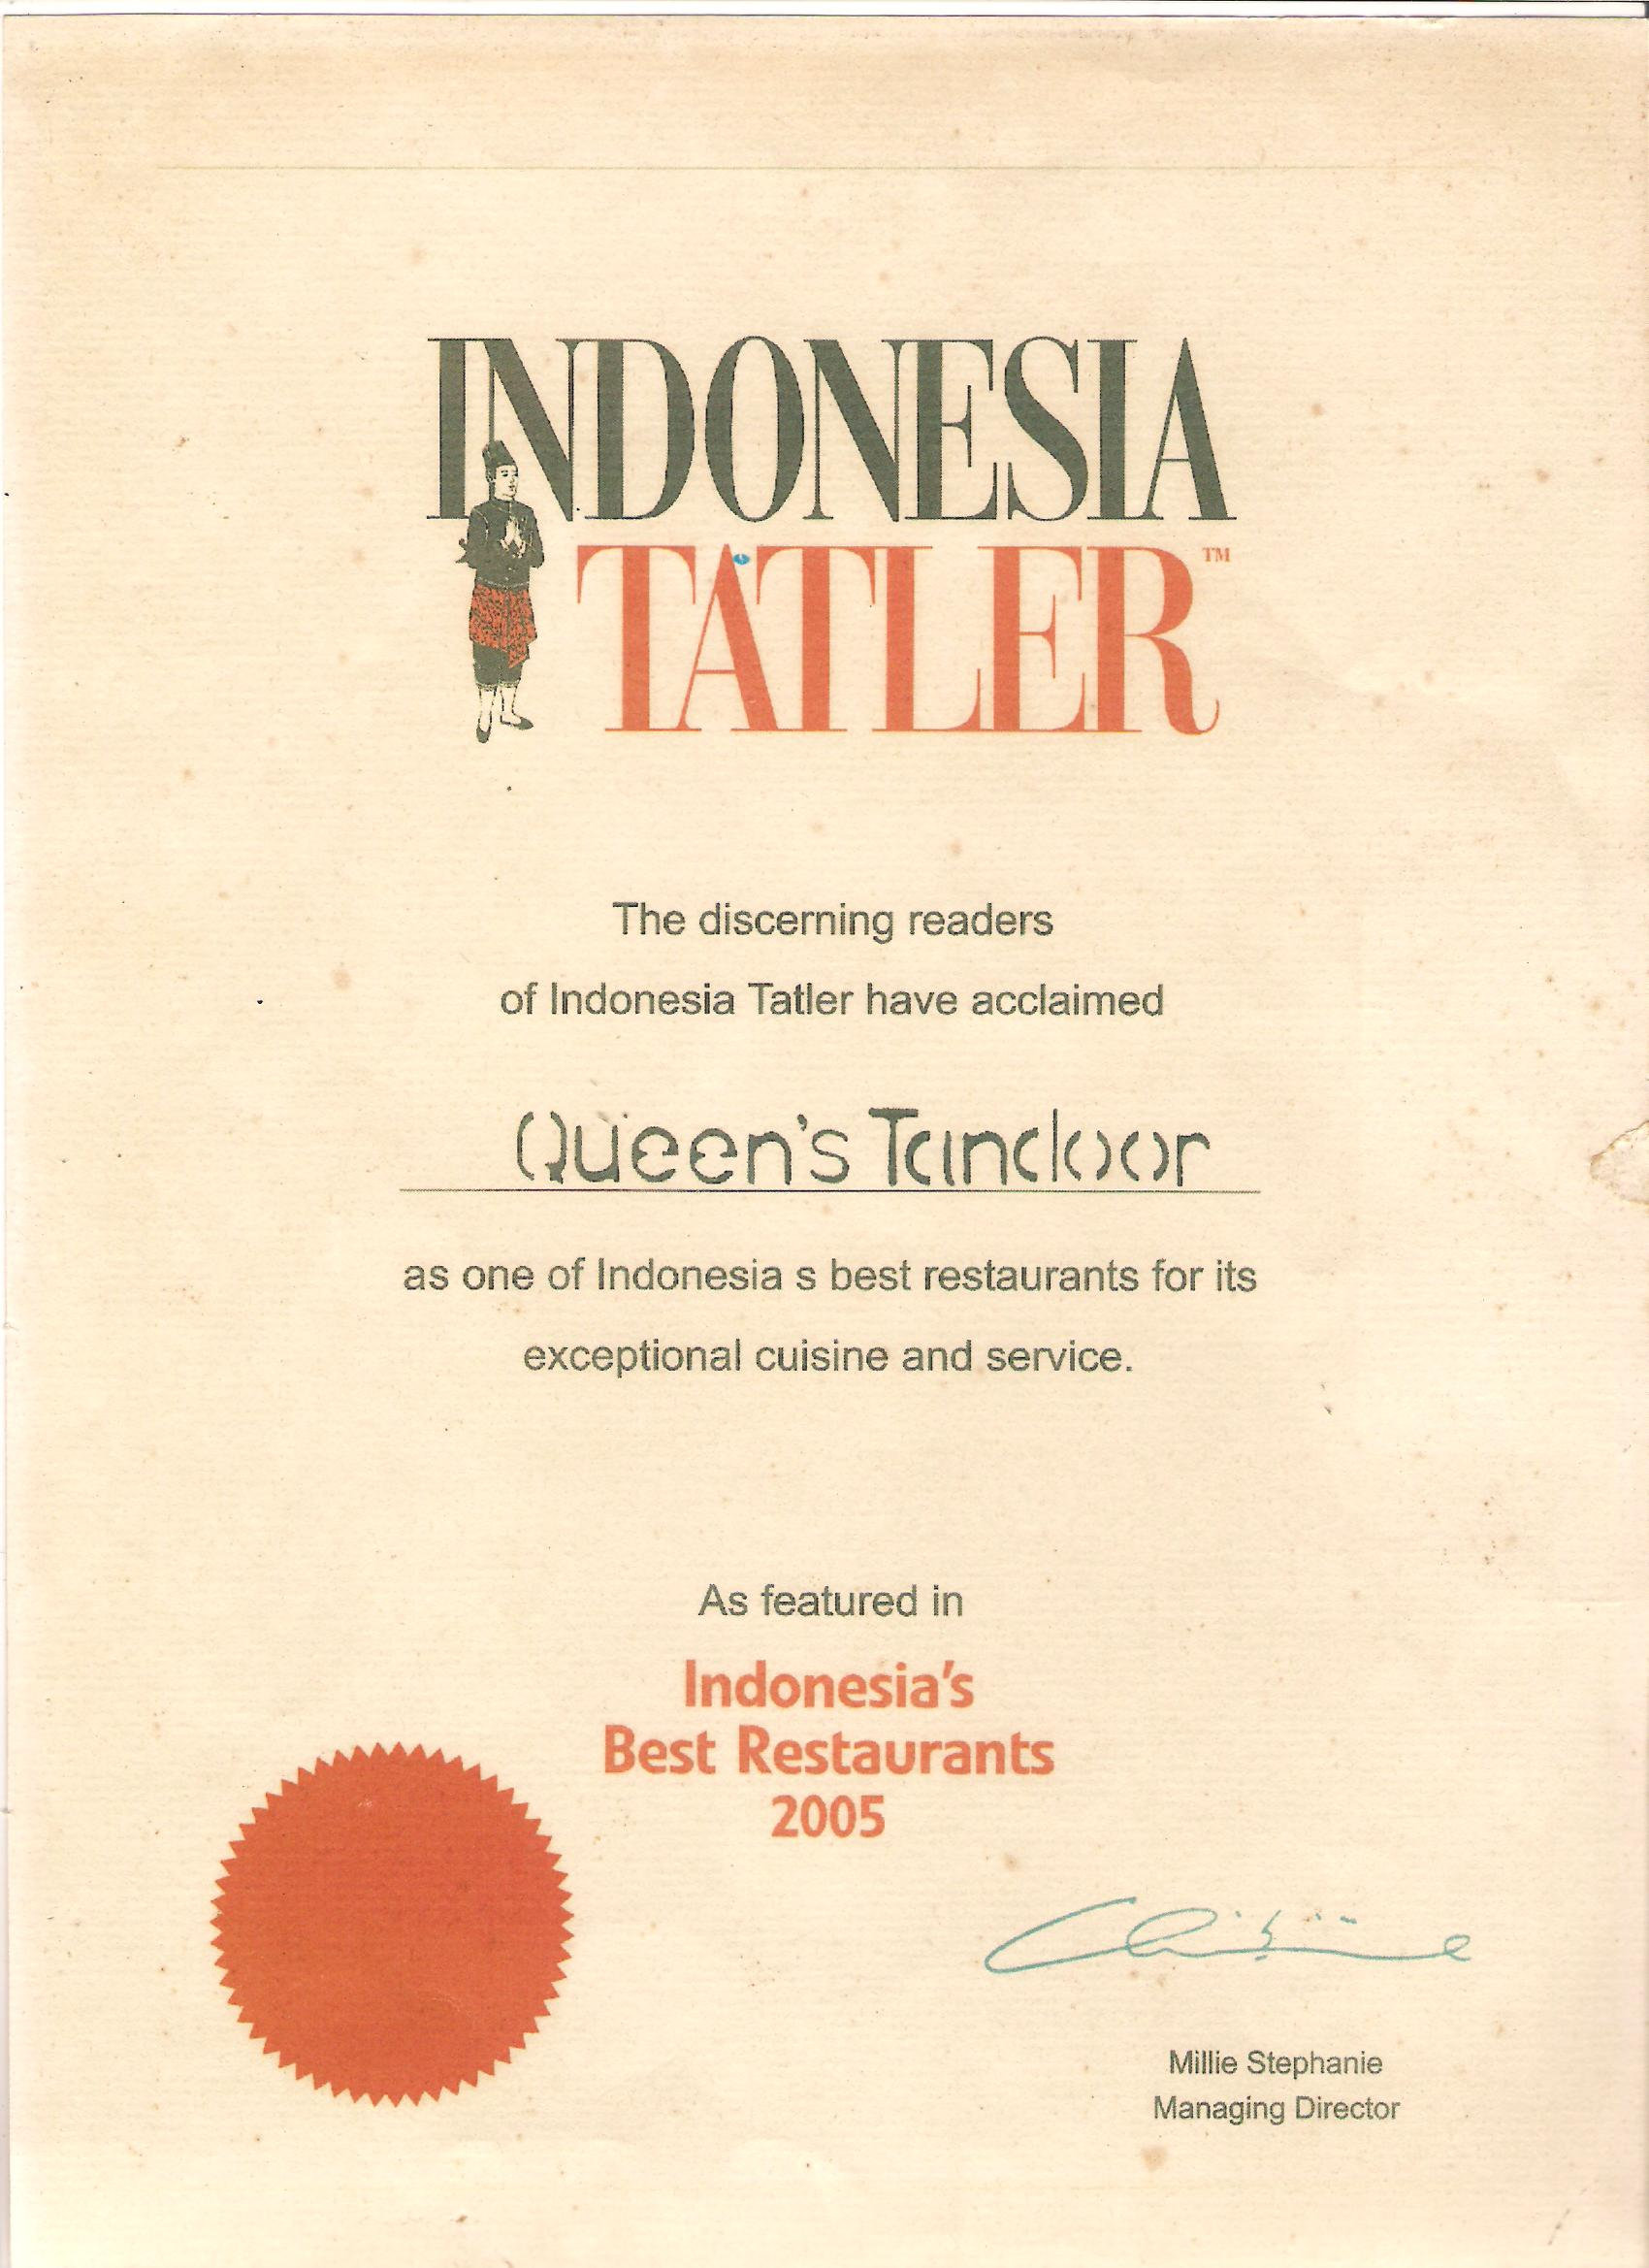 Indonesia Tatler 2005 - Indonesia Best Restaurant